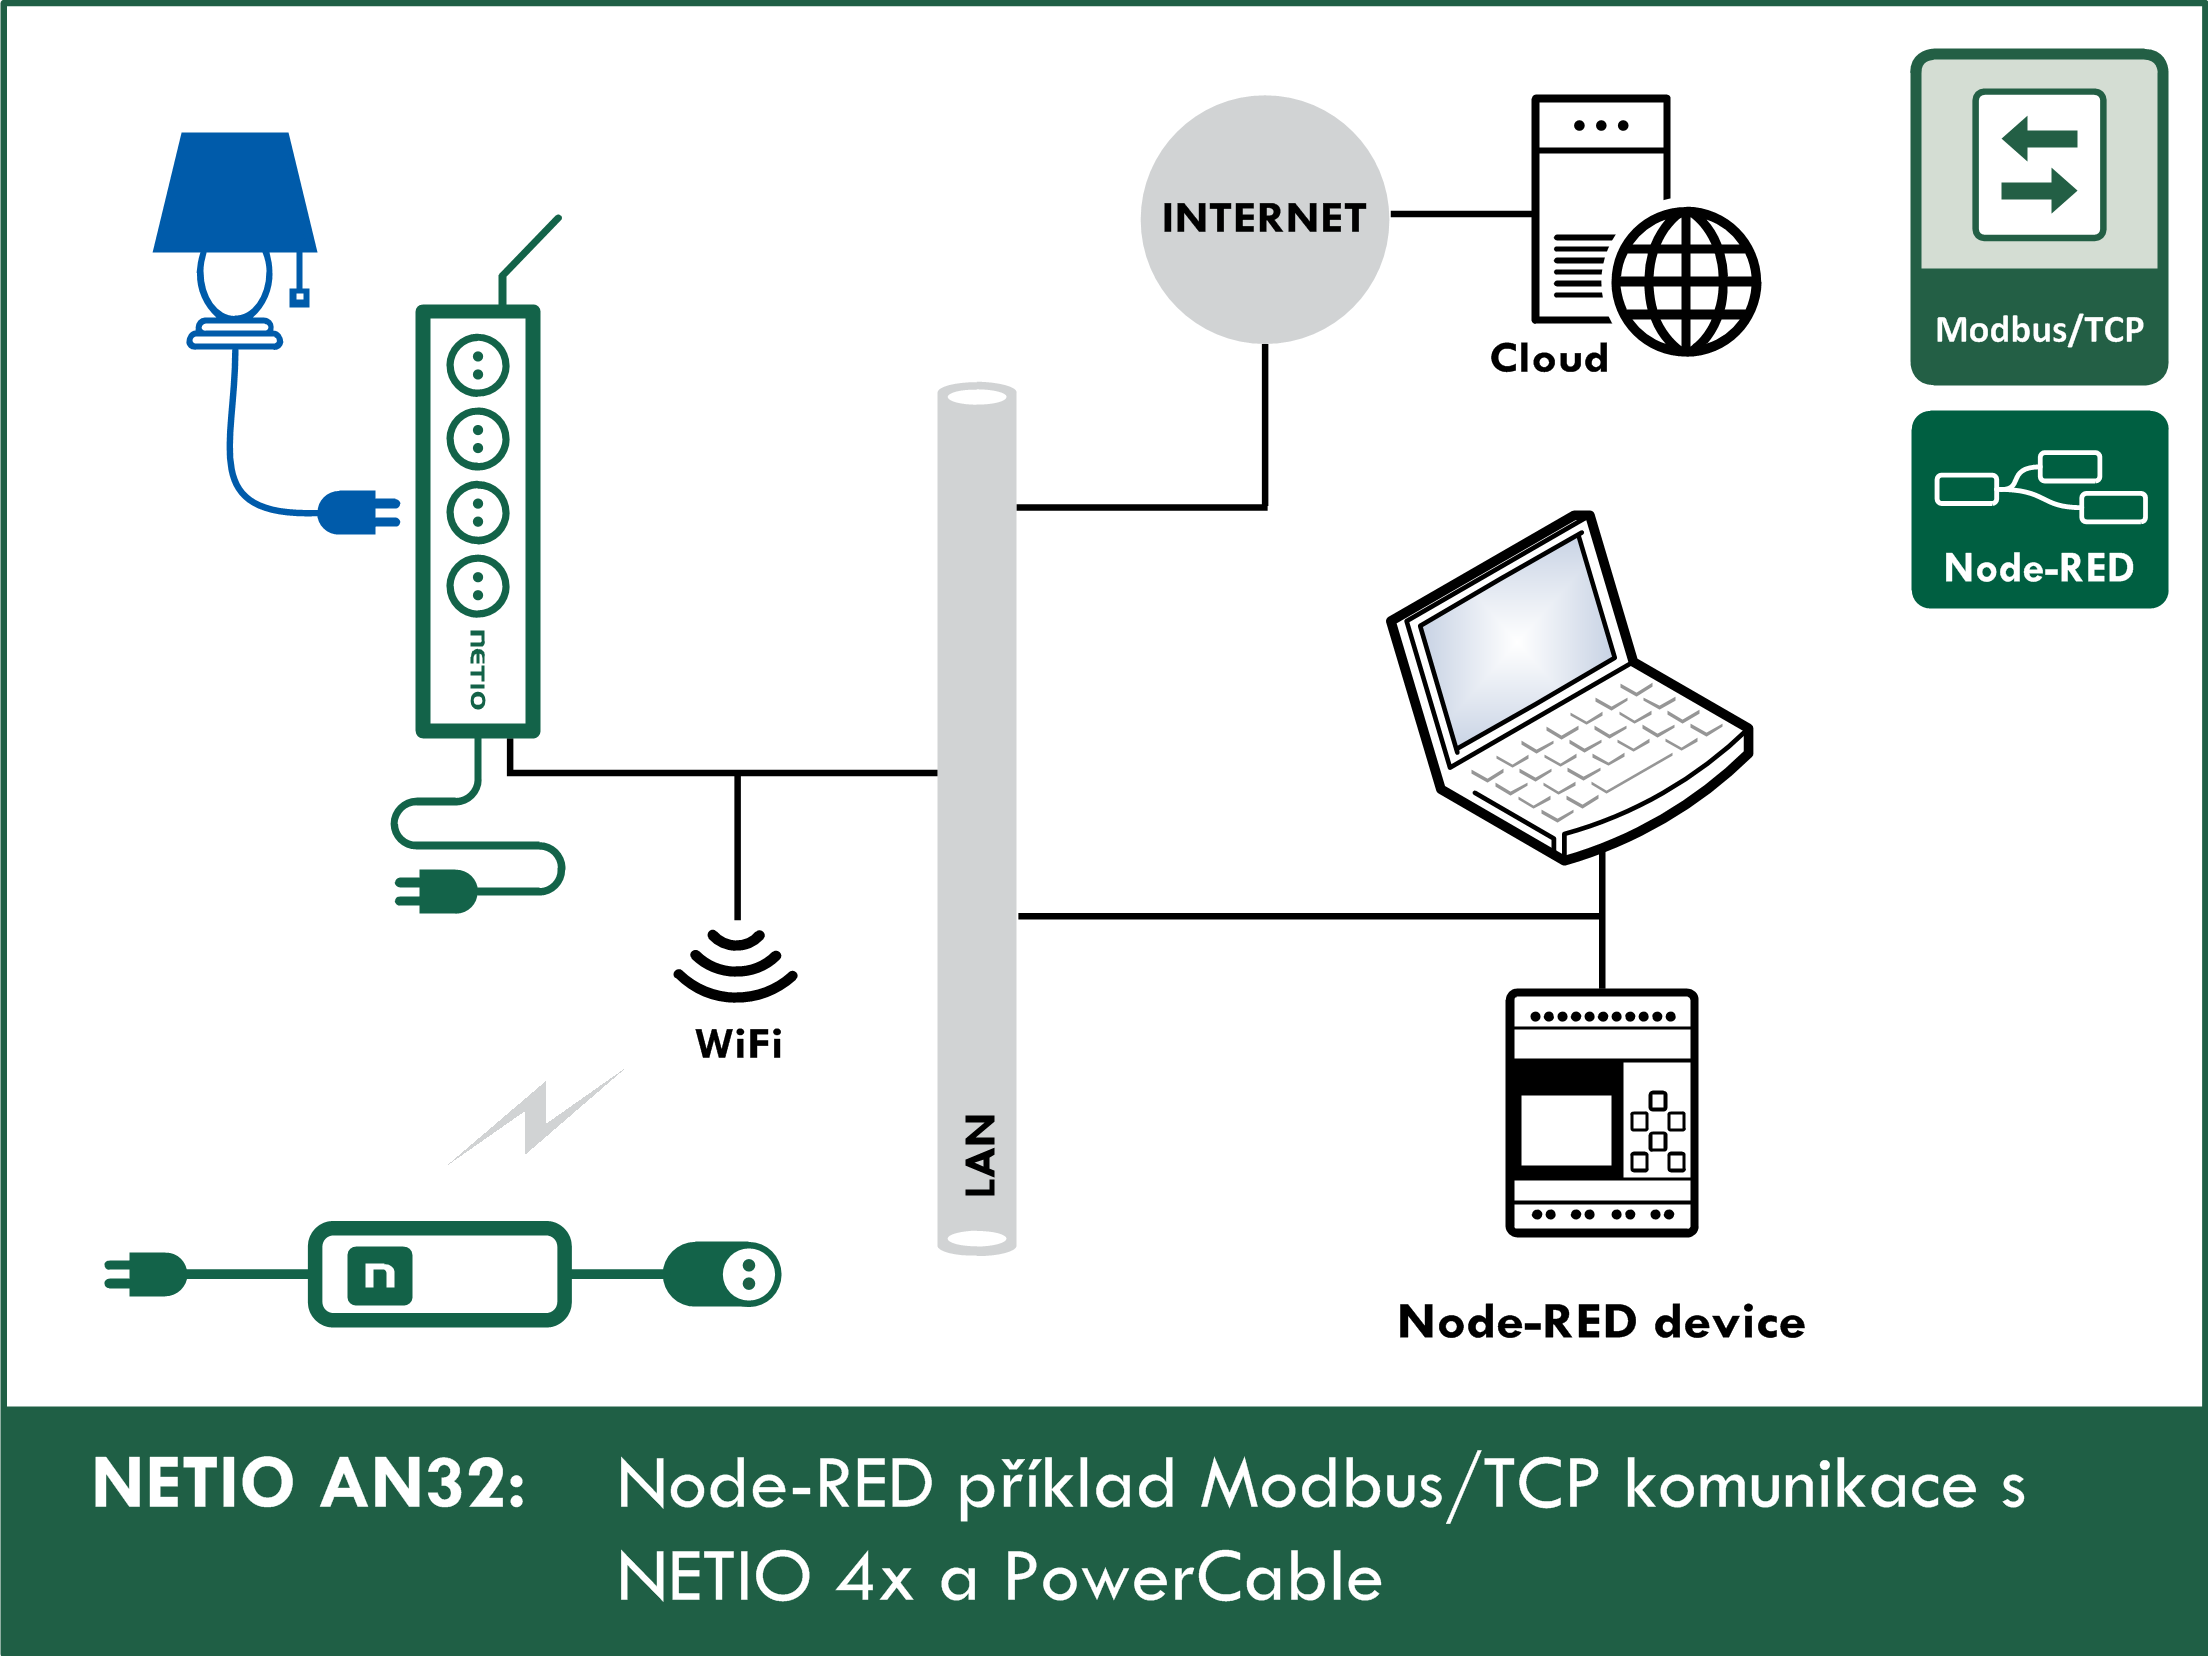 Node-RED příklad Modbus/TCP komunikace s NETIO 4x / PowerCable